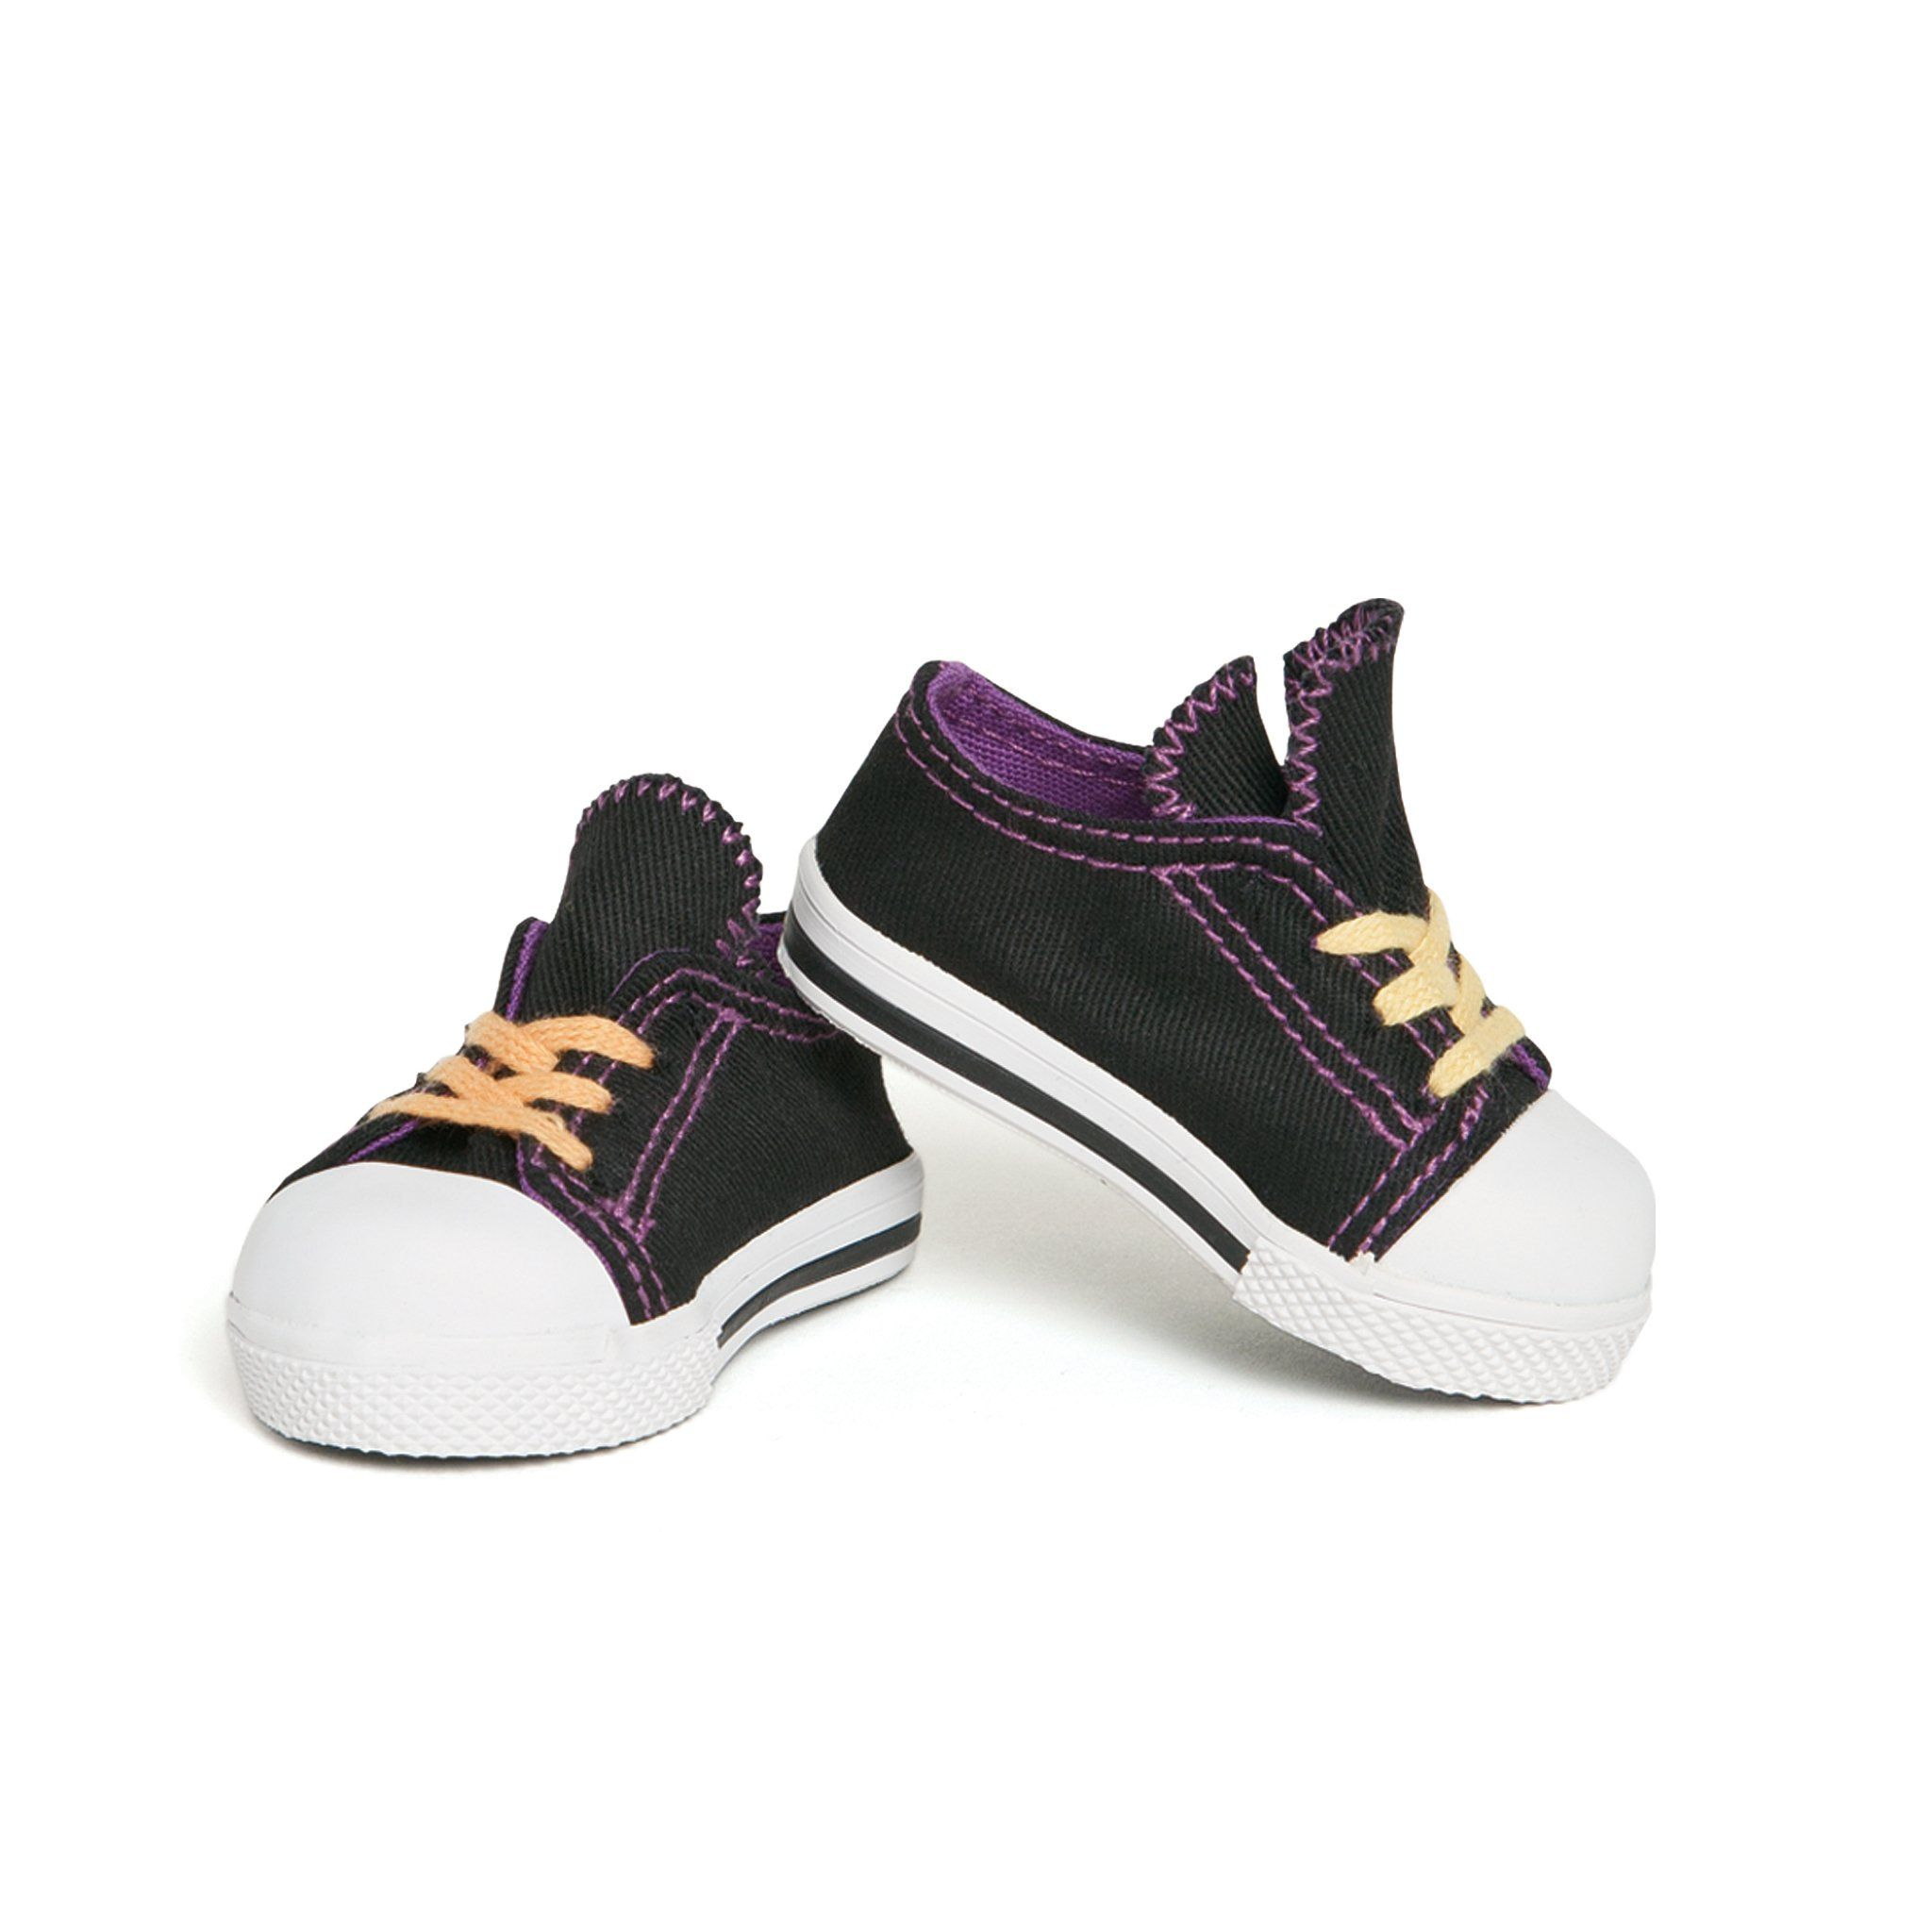 Positively Peaceful black runners with mis-matched laces. Fits all 18 inch dolls.